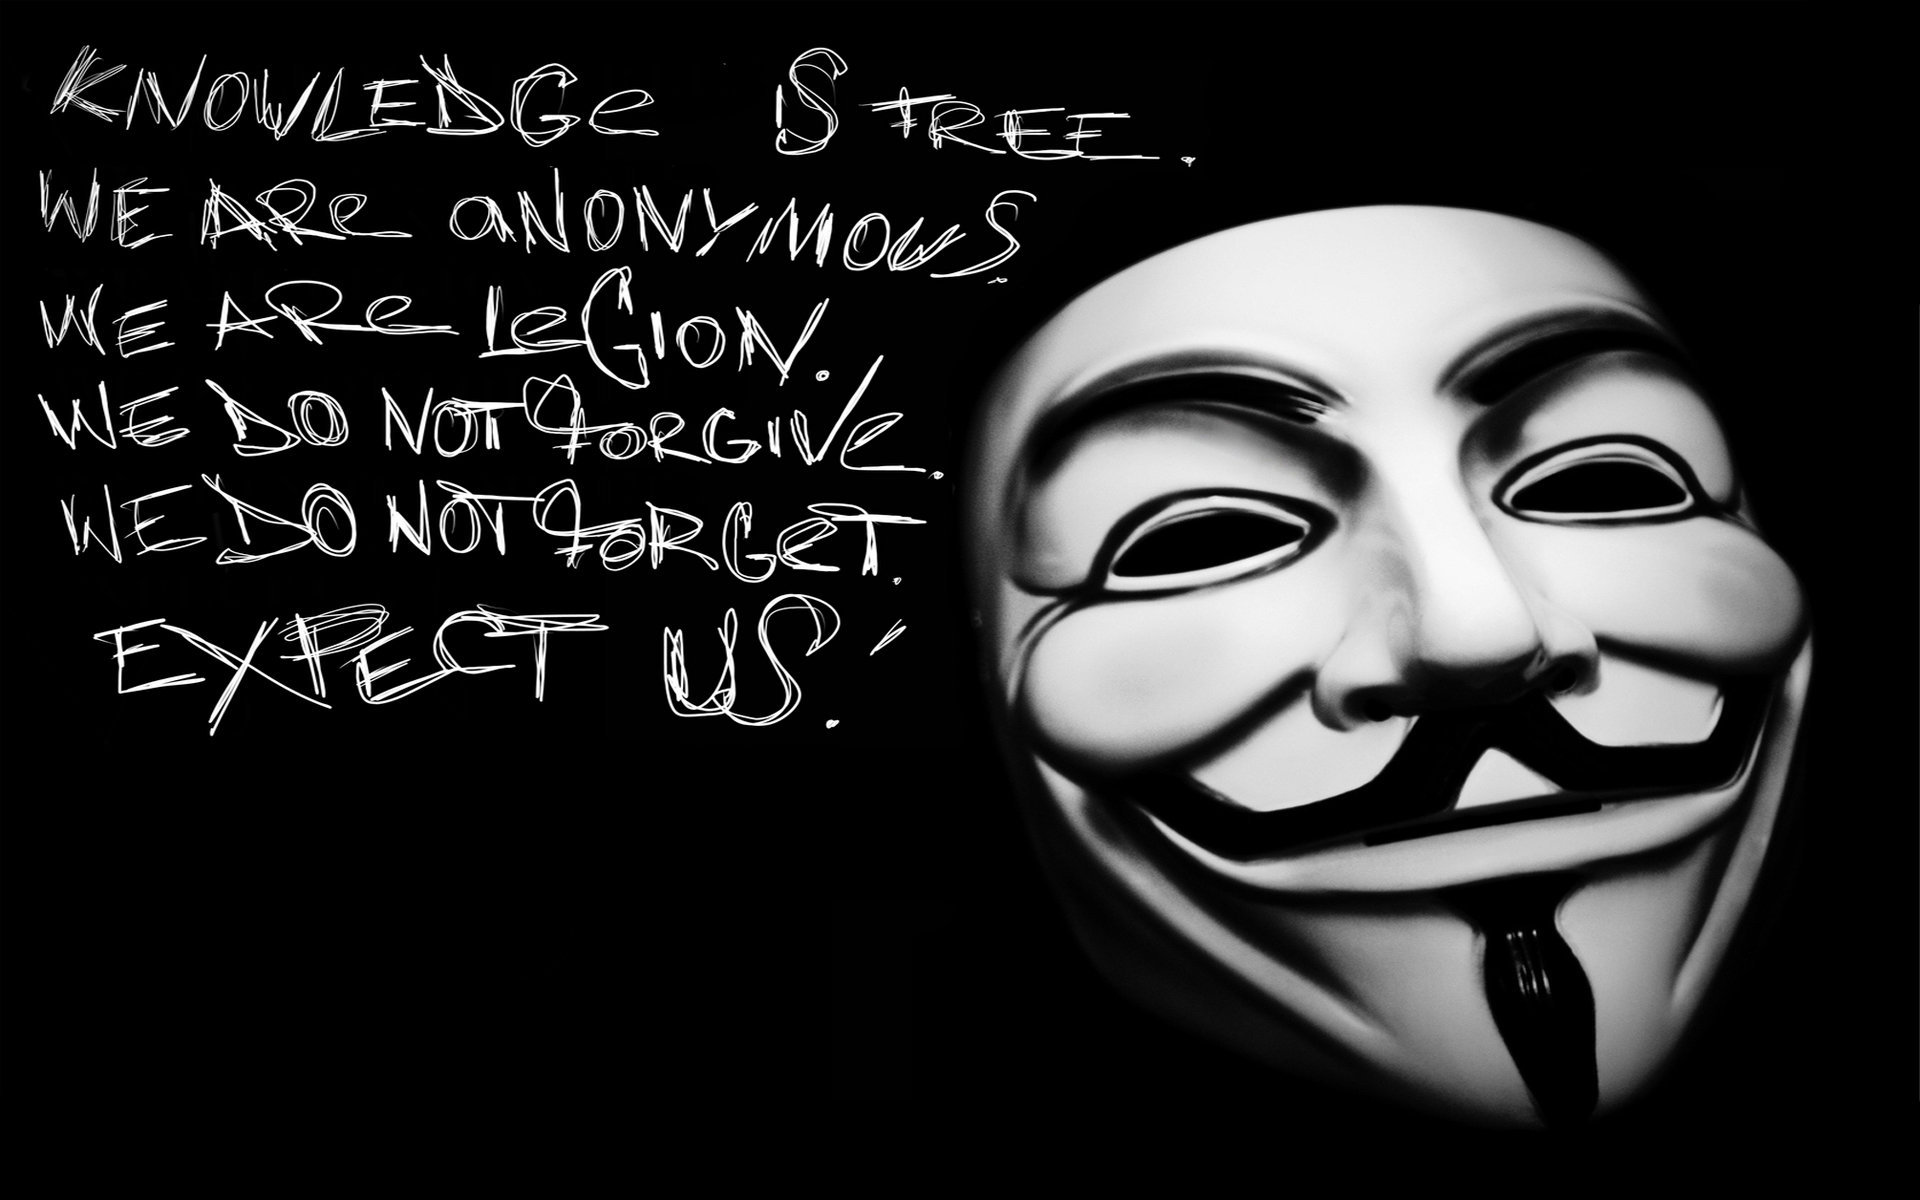 Anonymous Wallpaper HD #6230 Wallpaper | Desktoplist.Com Wallpaper